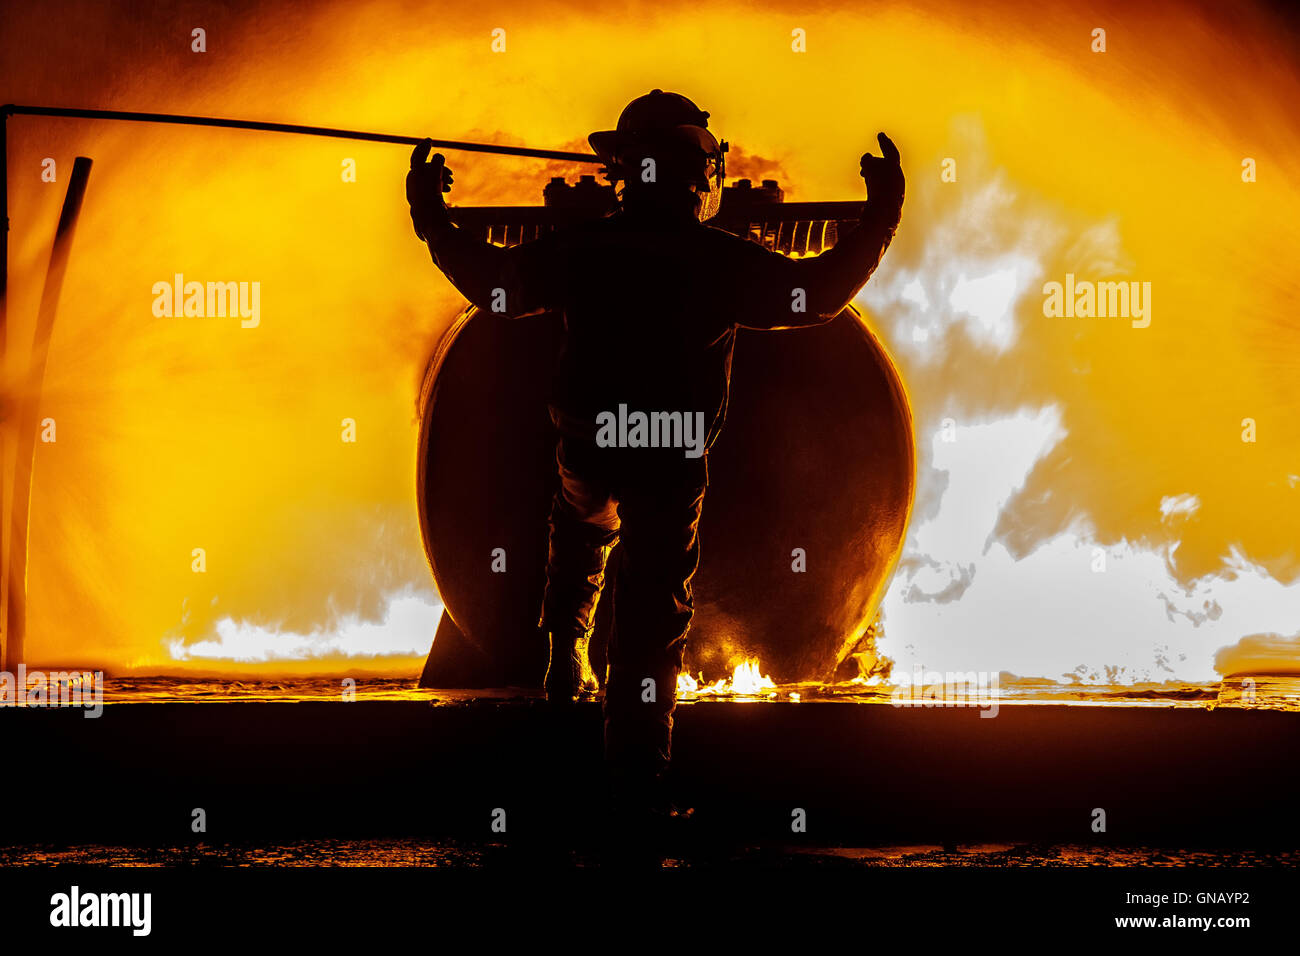 Firechief standing in front of fire - Stock Image